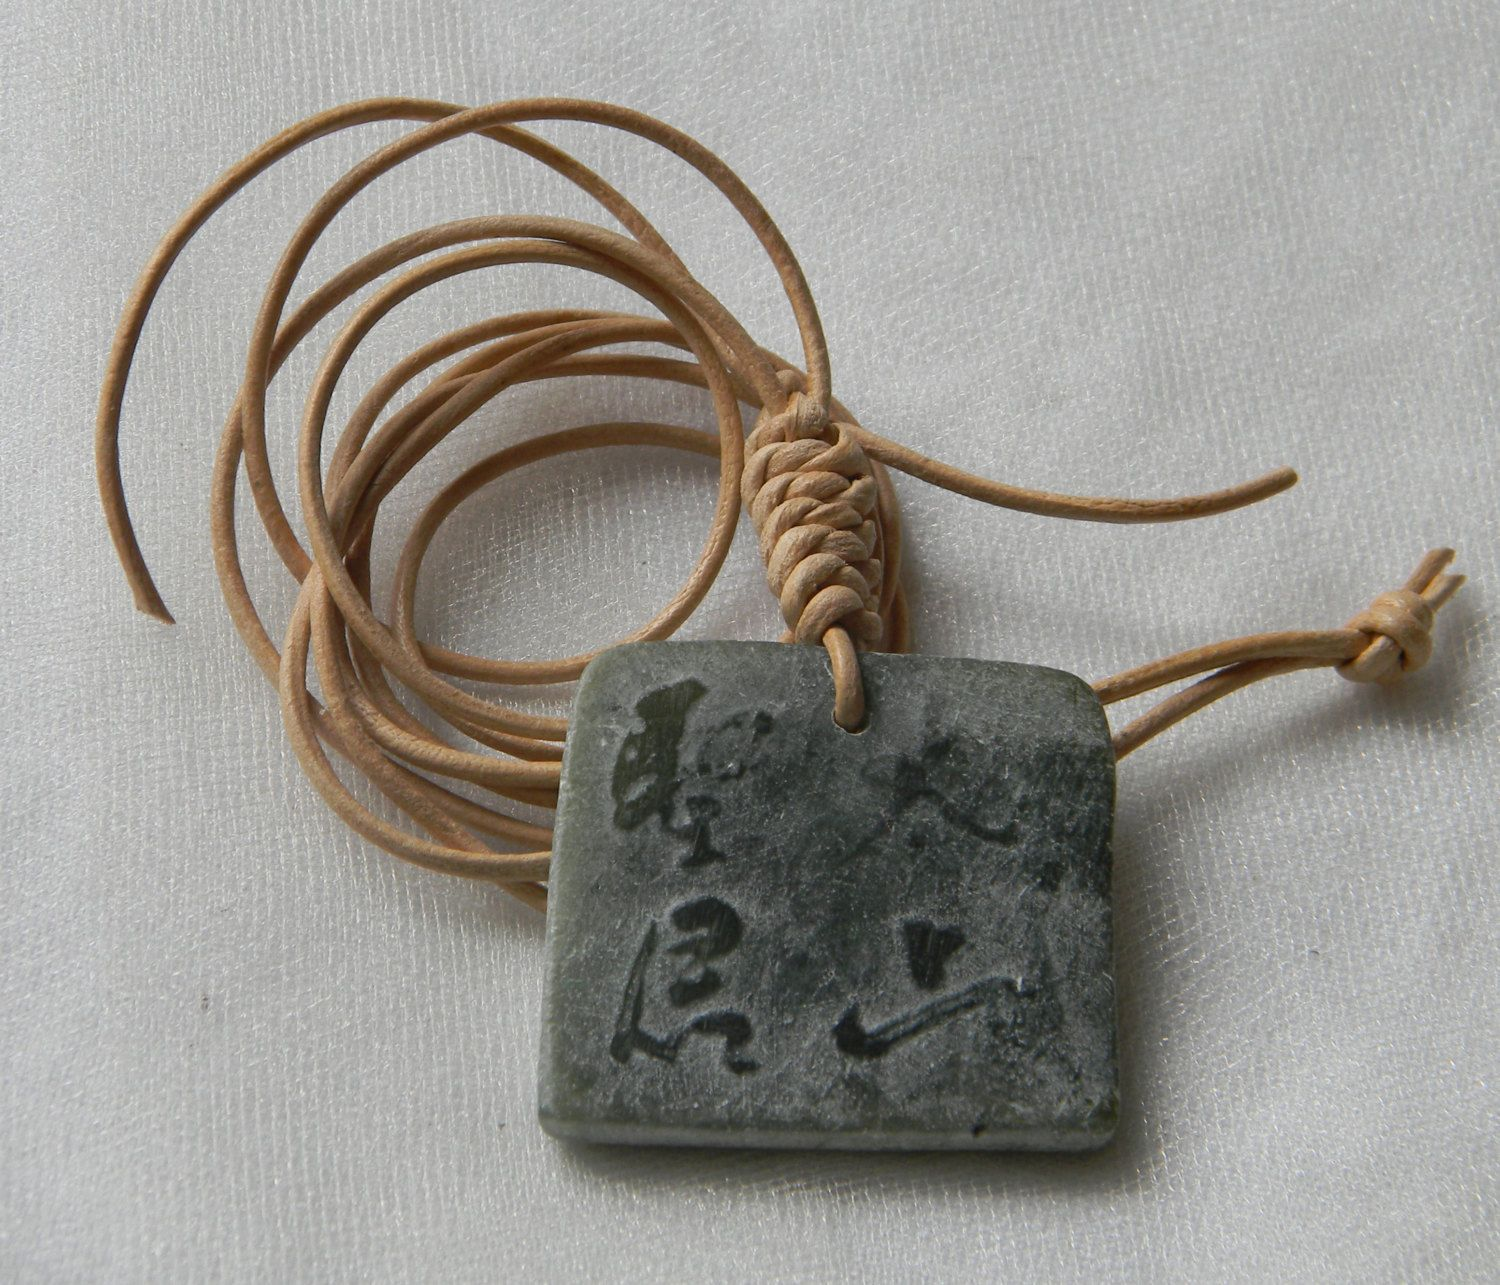 necklace chinese carved antique myshoplah silk meaning jade pearl pendant